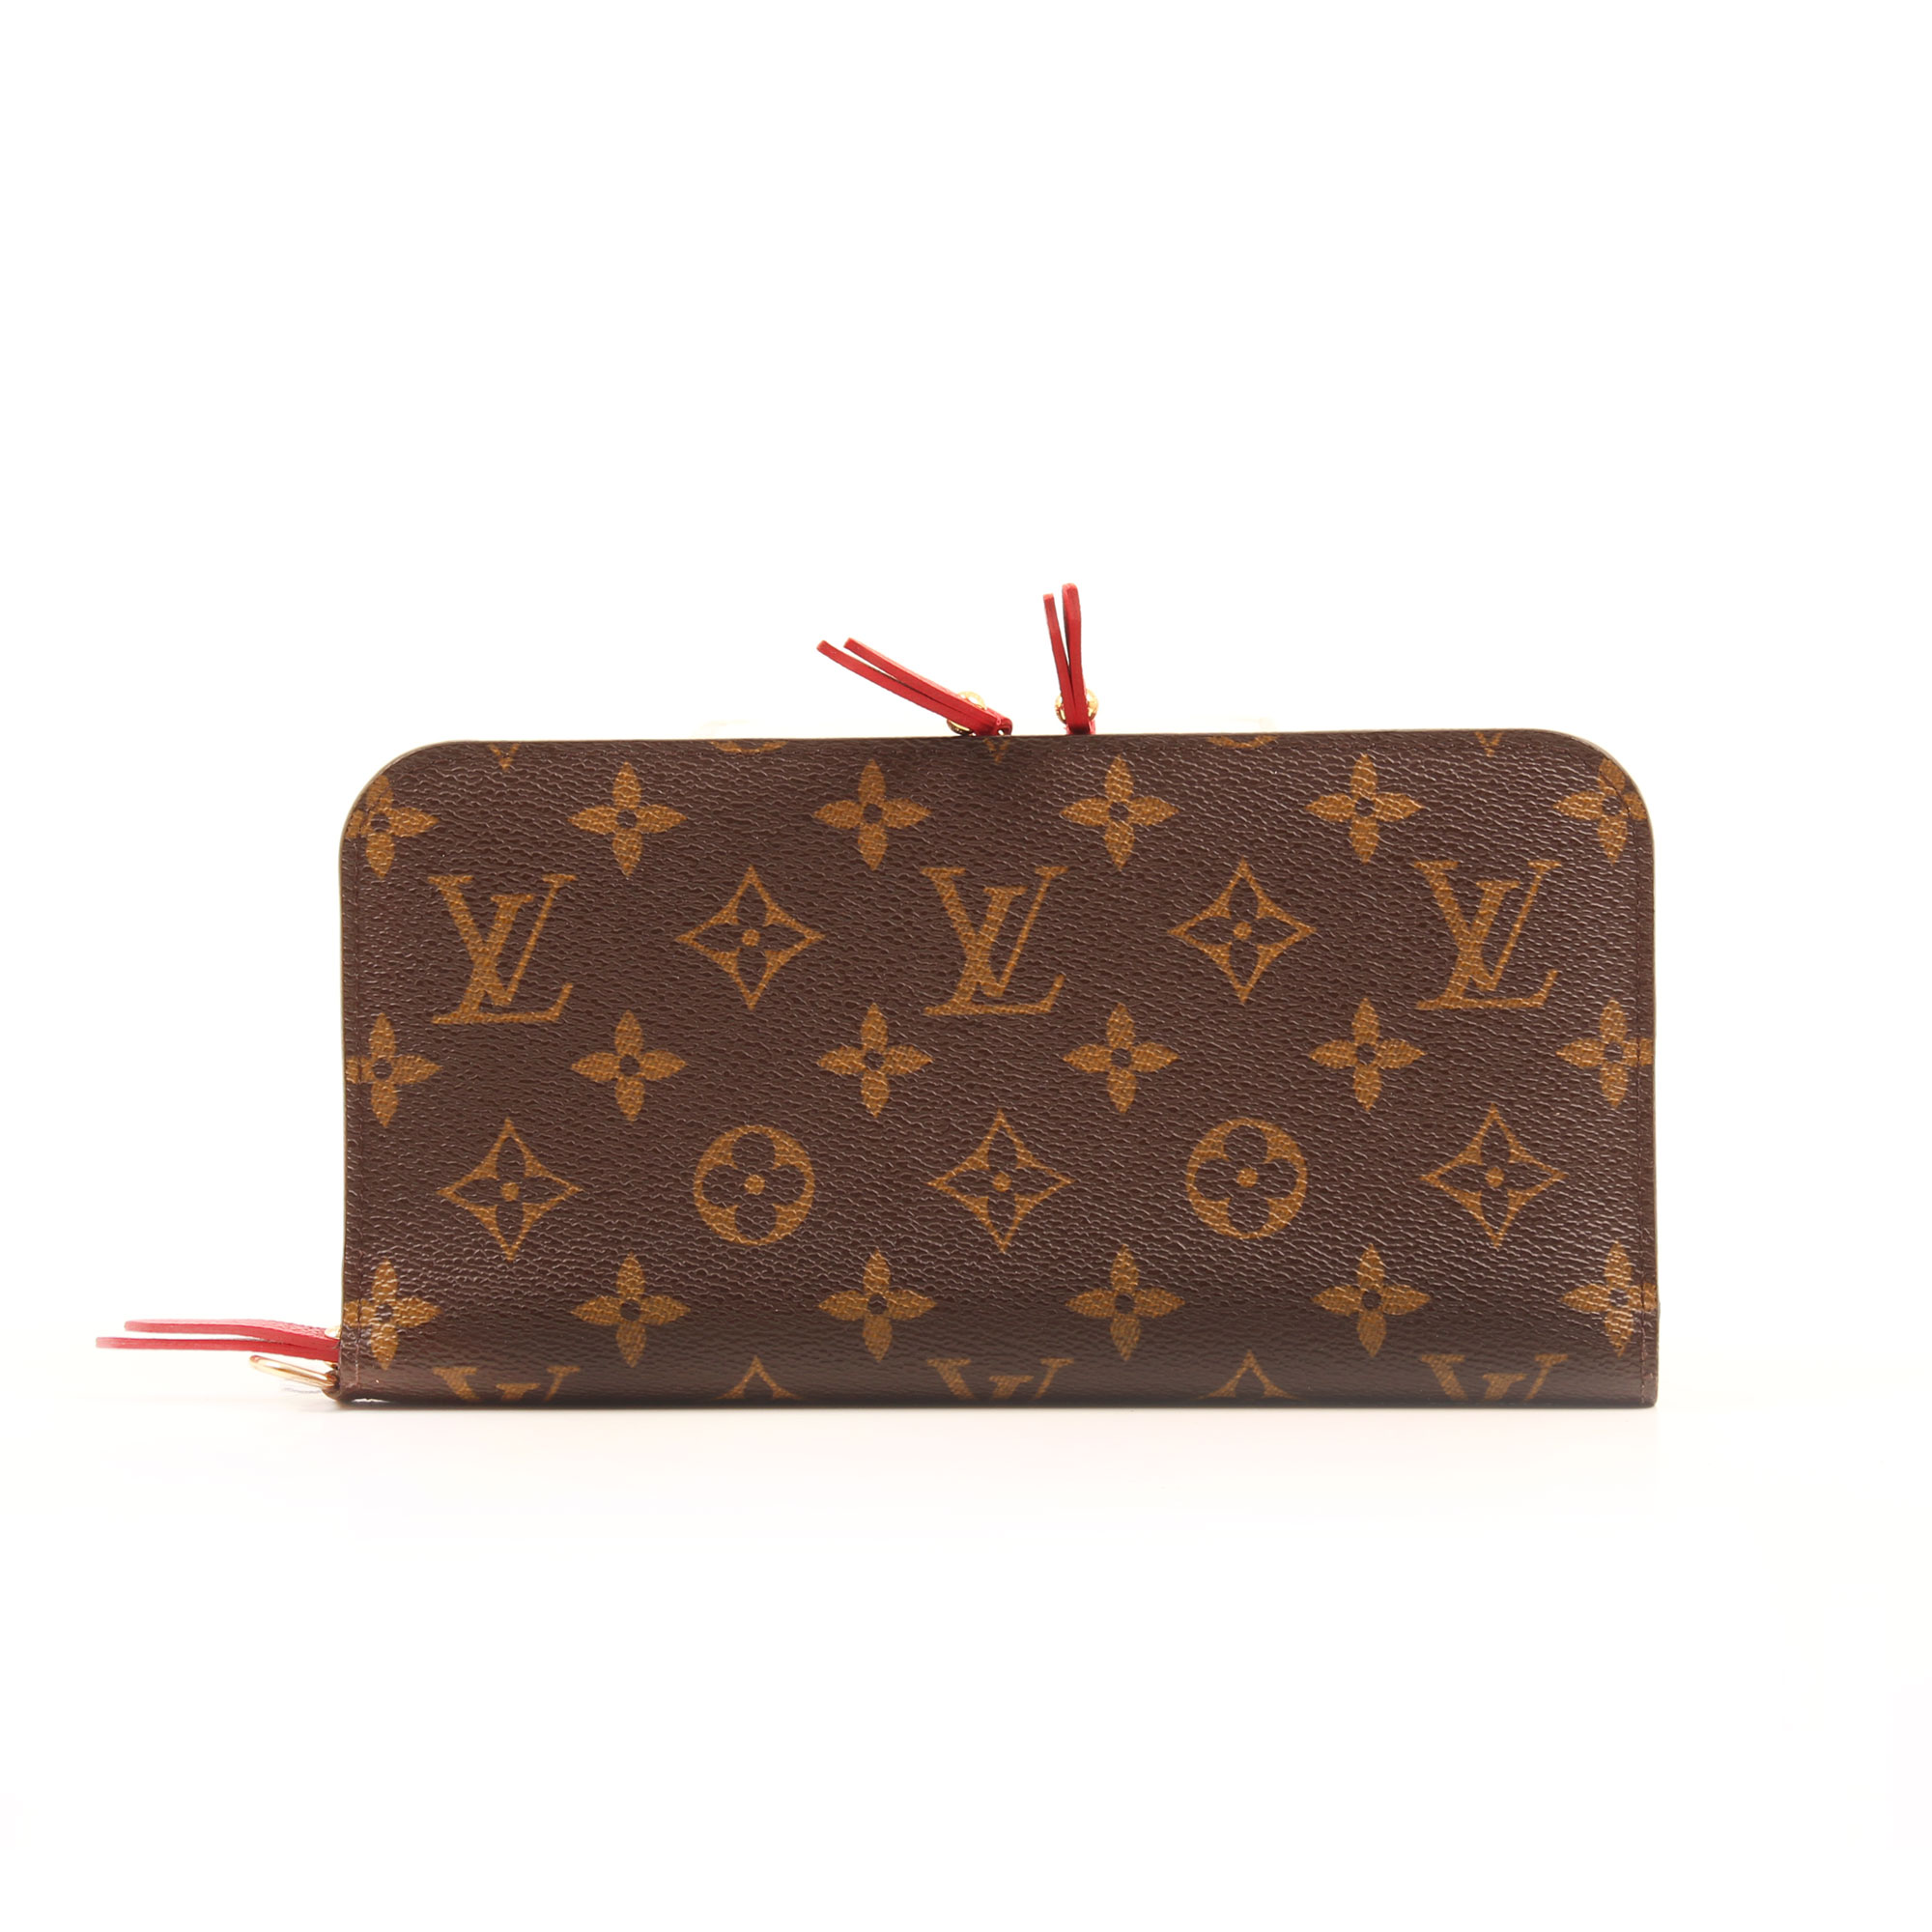 Front image of louis vuitton insolite monogram red wallet